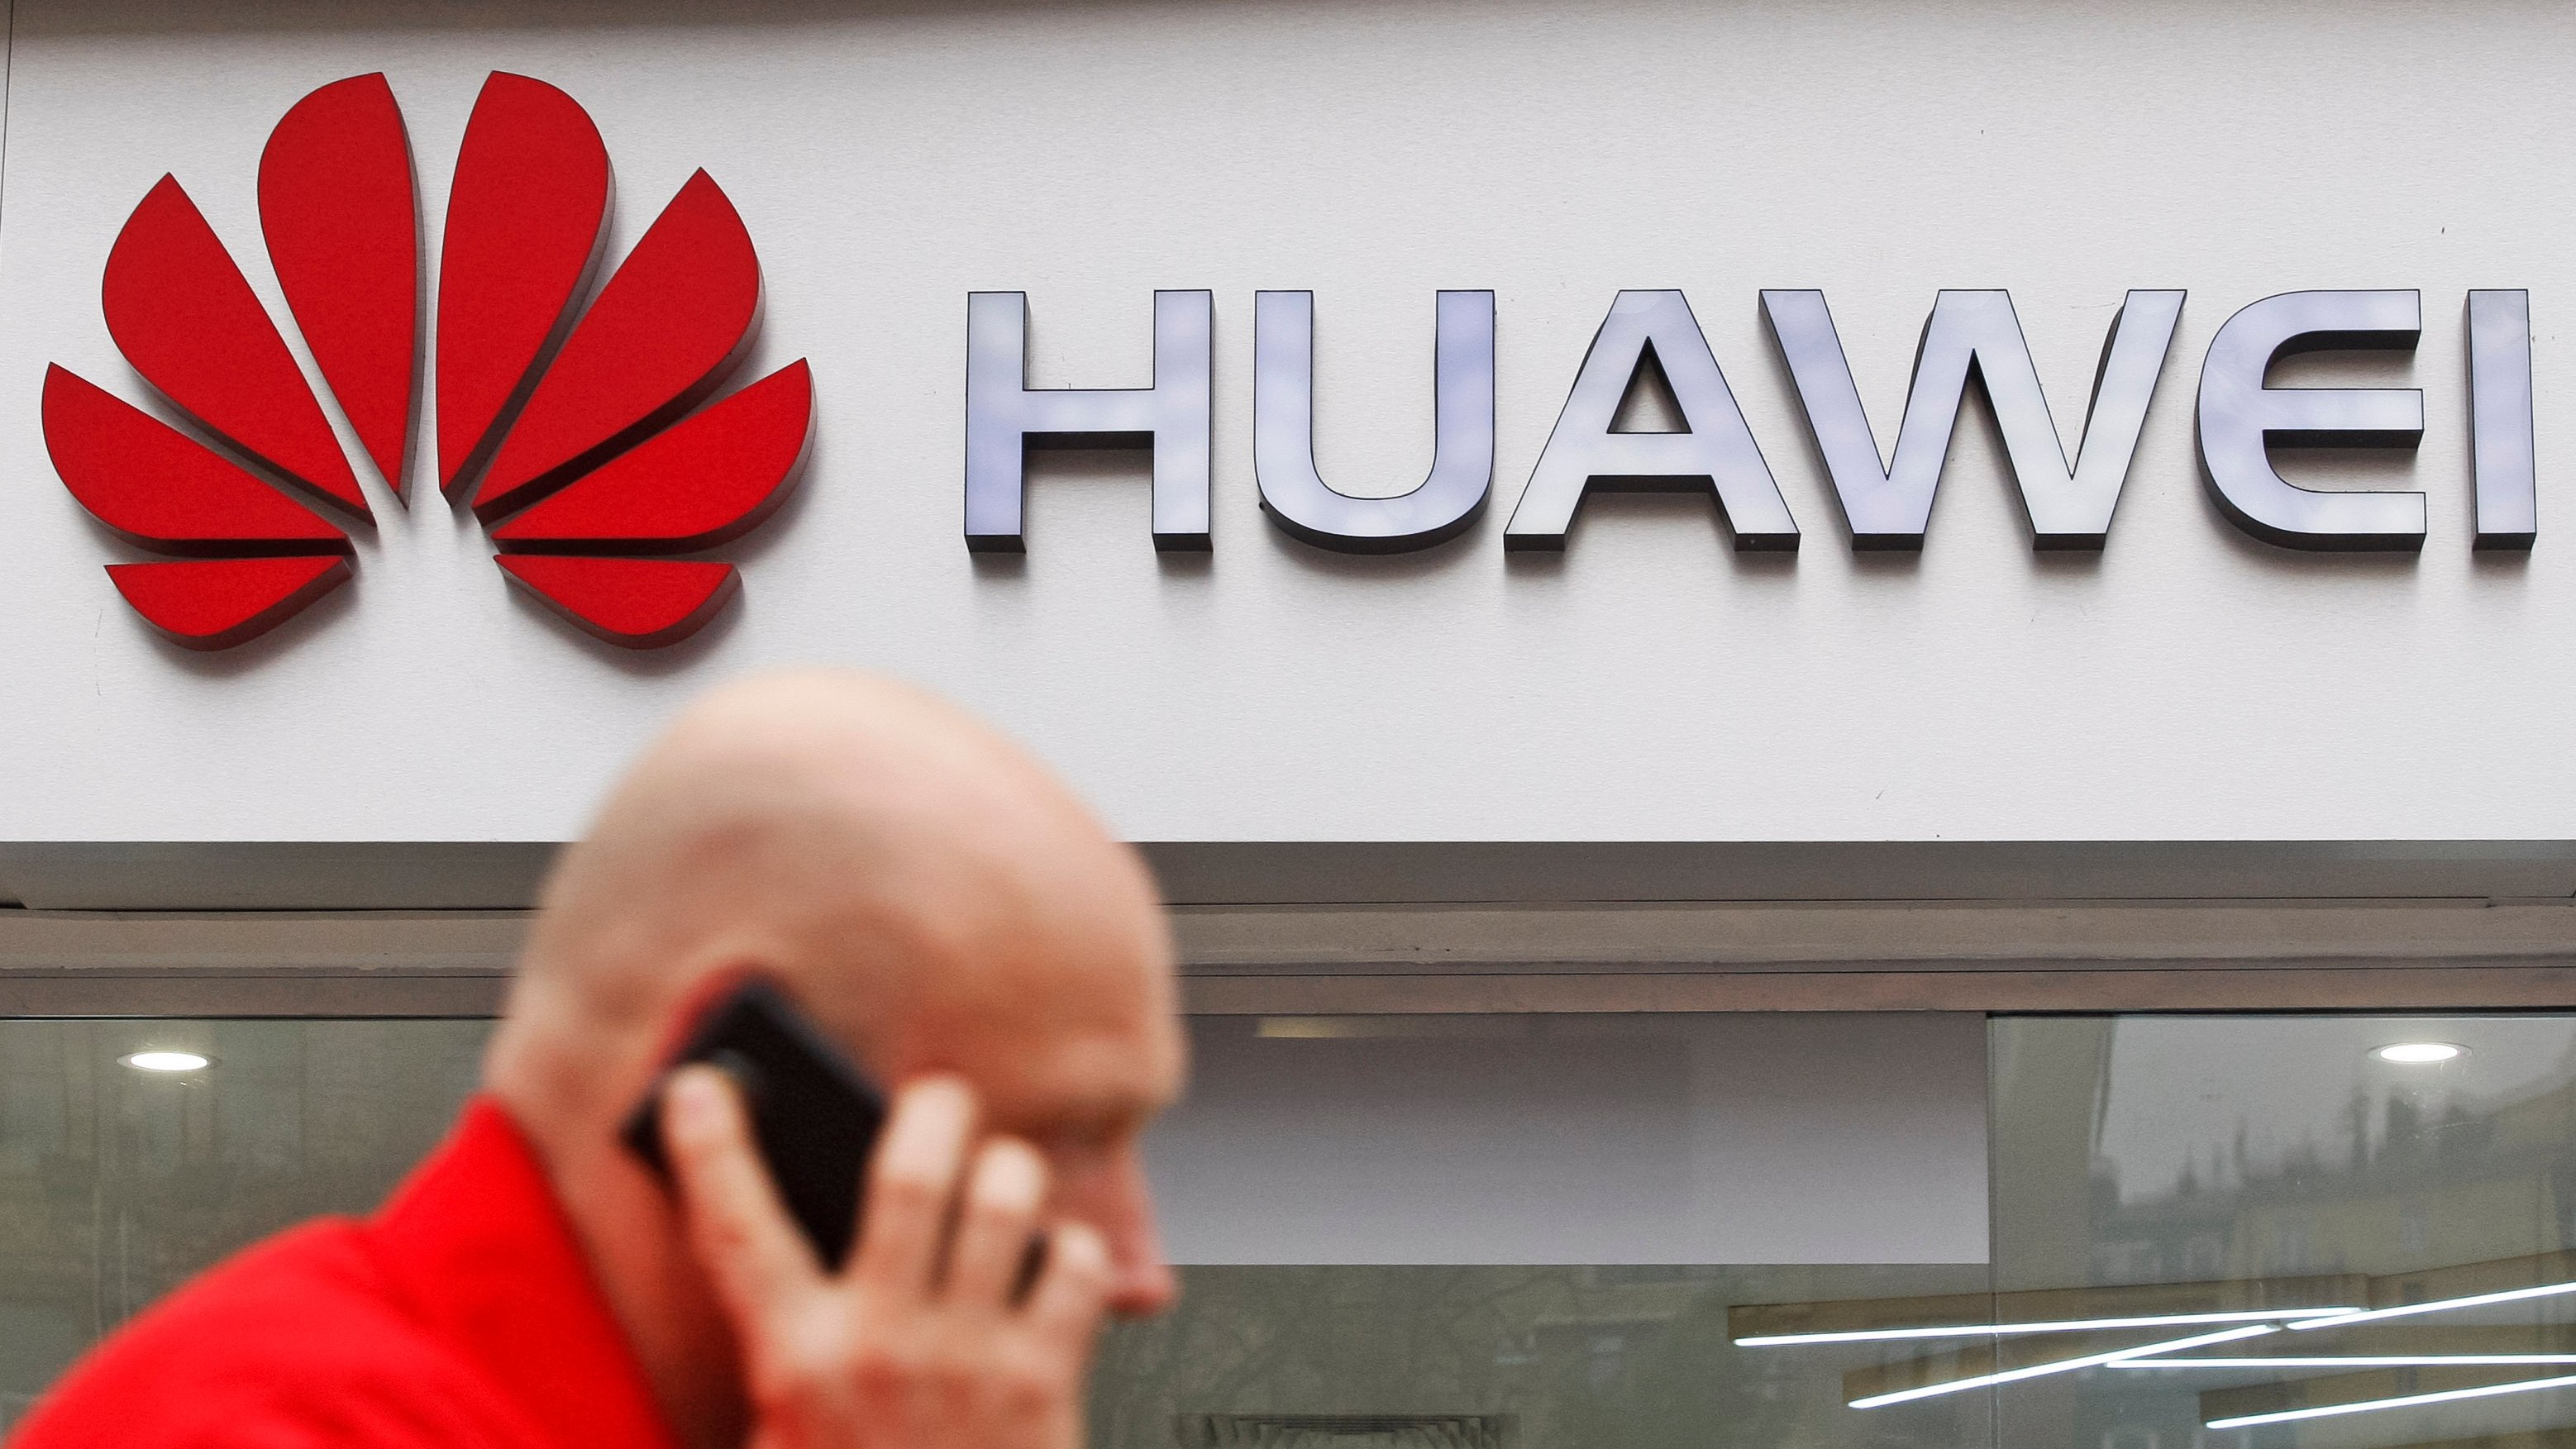 Got a Huawei phone? Your rights as Google prepares to